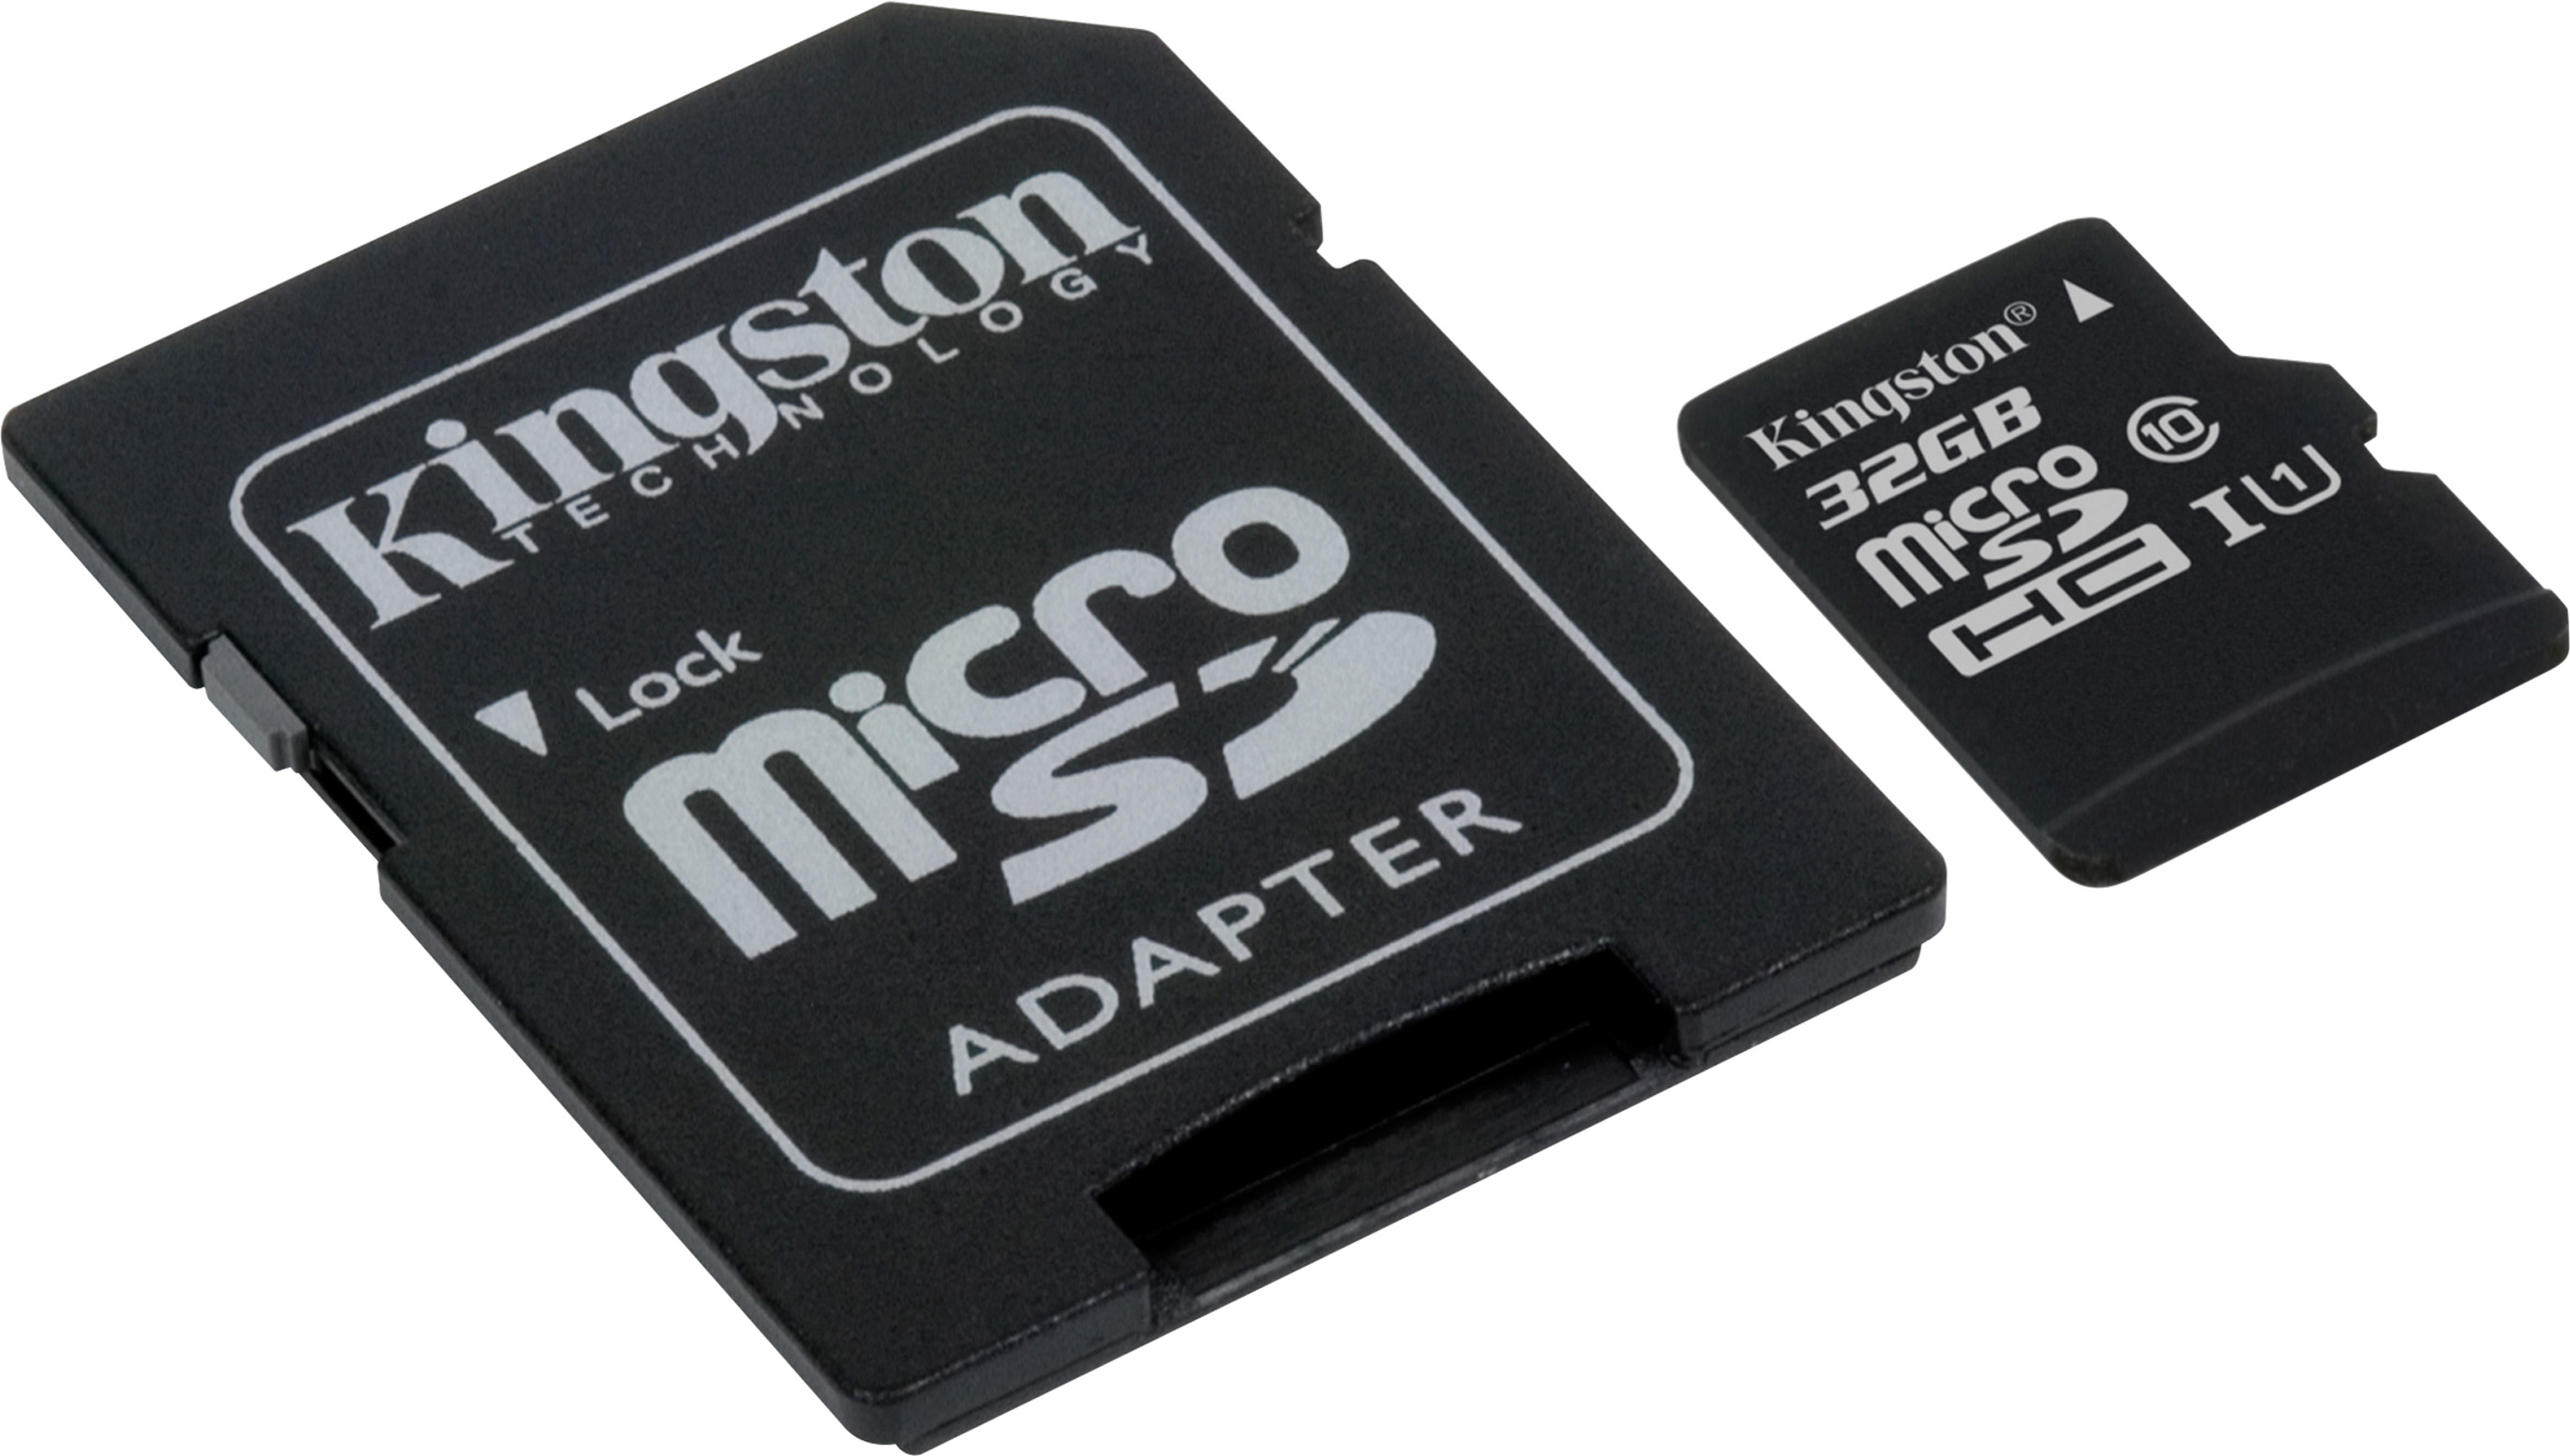 Kingston 32GB microSDHC Class 10 + SD Adapter